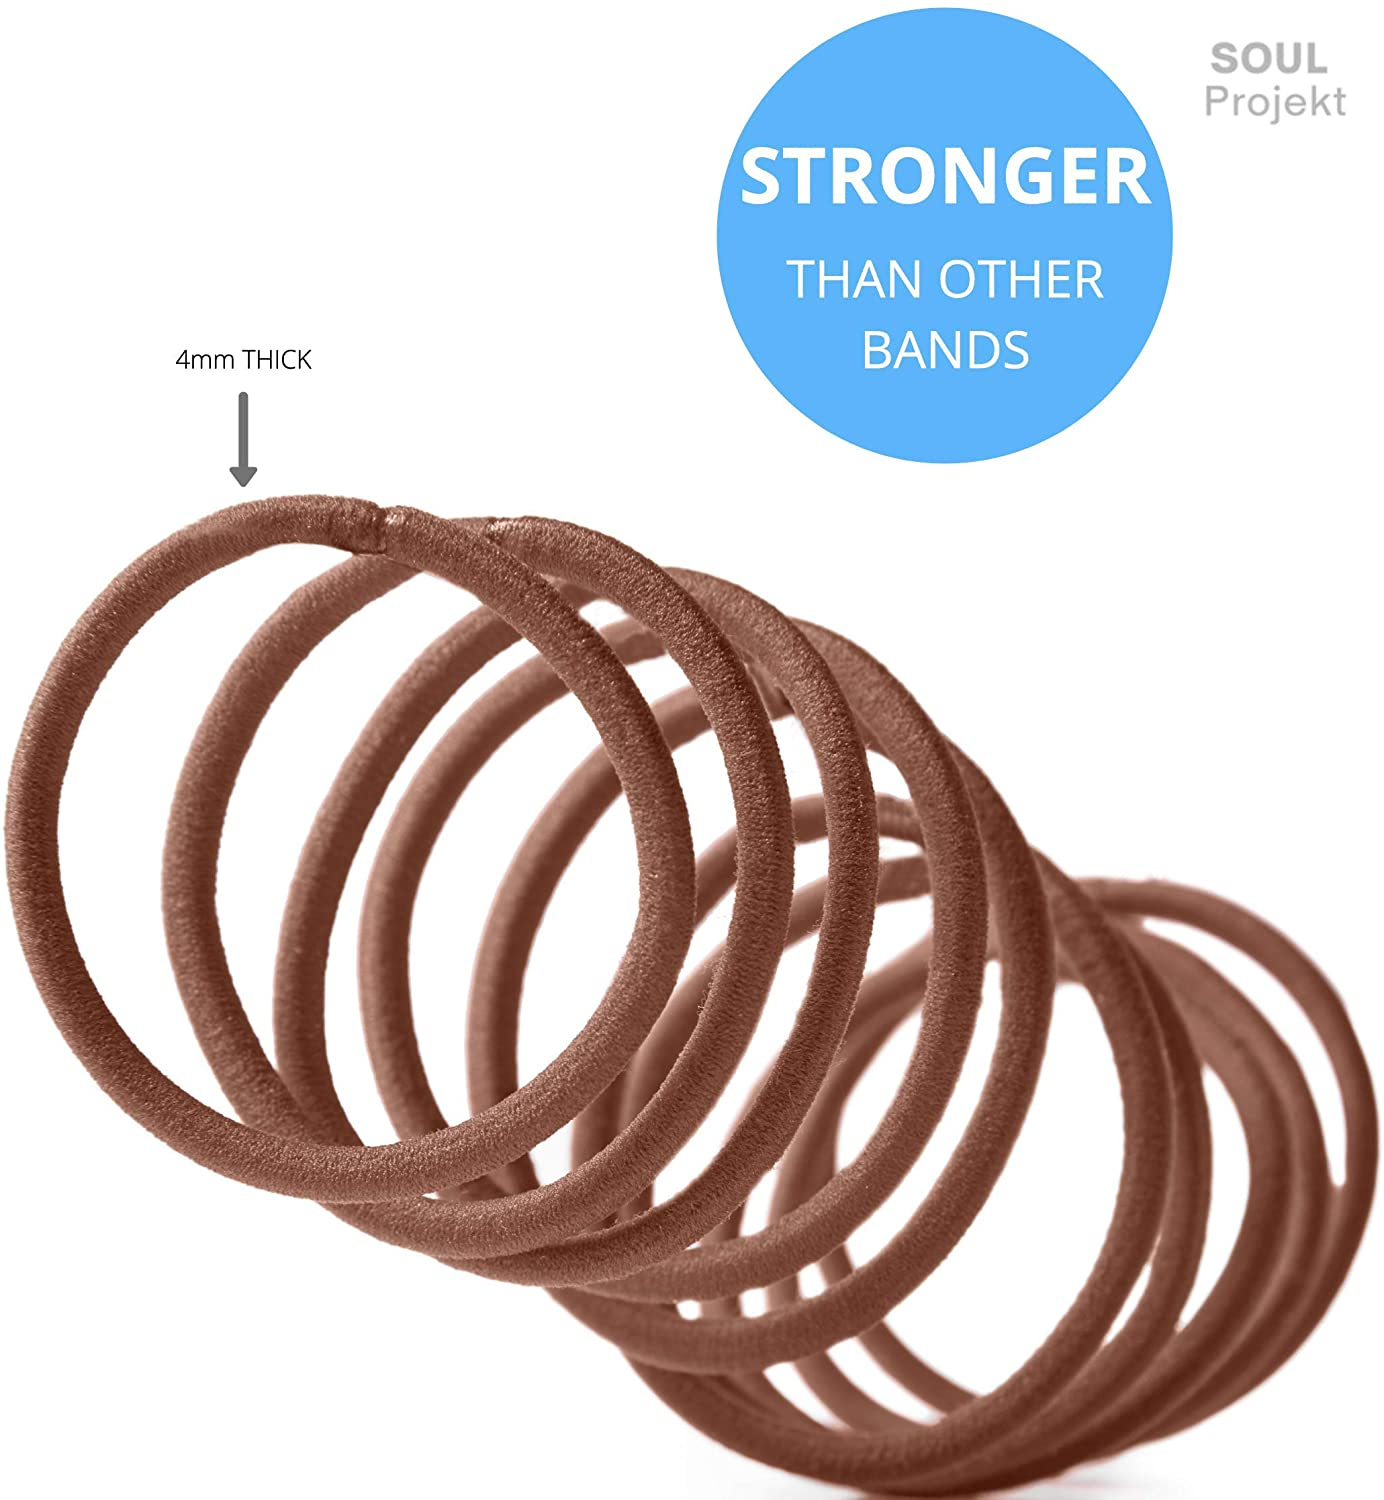 Soul Projekt Hair Bands 100 Pack 4mm/Excellent Multipurpose Ties (Brown), No Metal Tough Elastic Hair Bobbles for Numerous Hair Types/Pigtail, Plaiting, Ponytails & Buns For School, Work or Gym